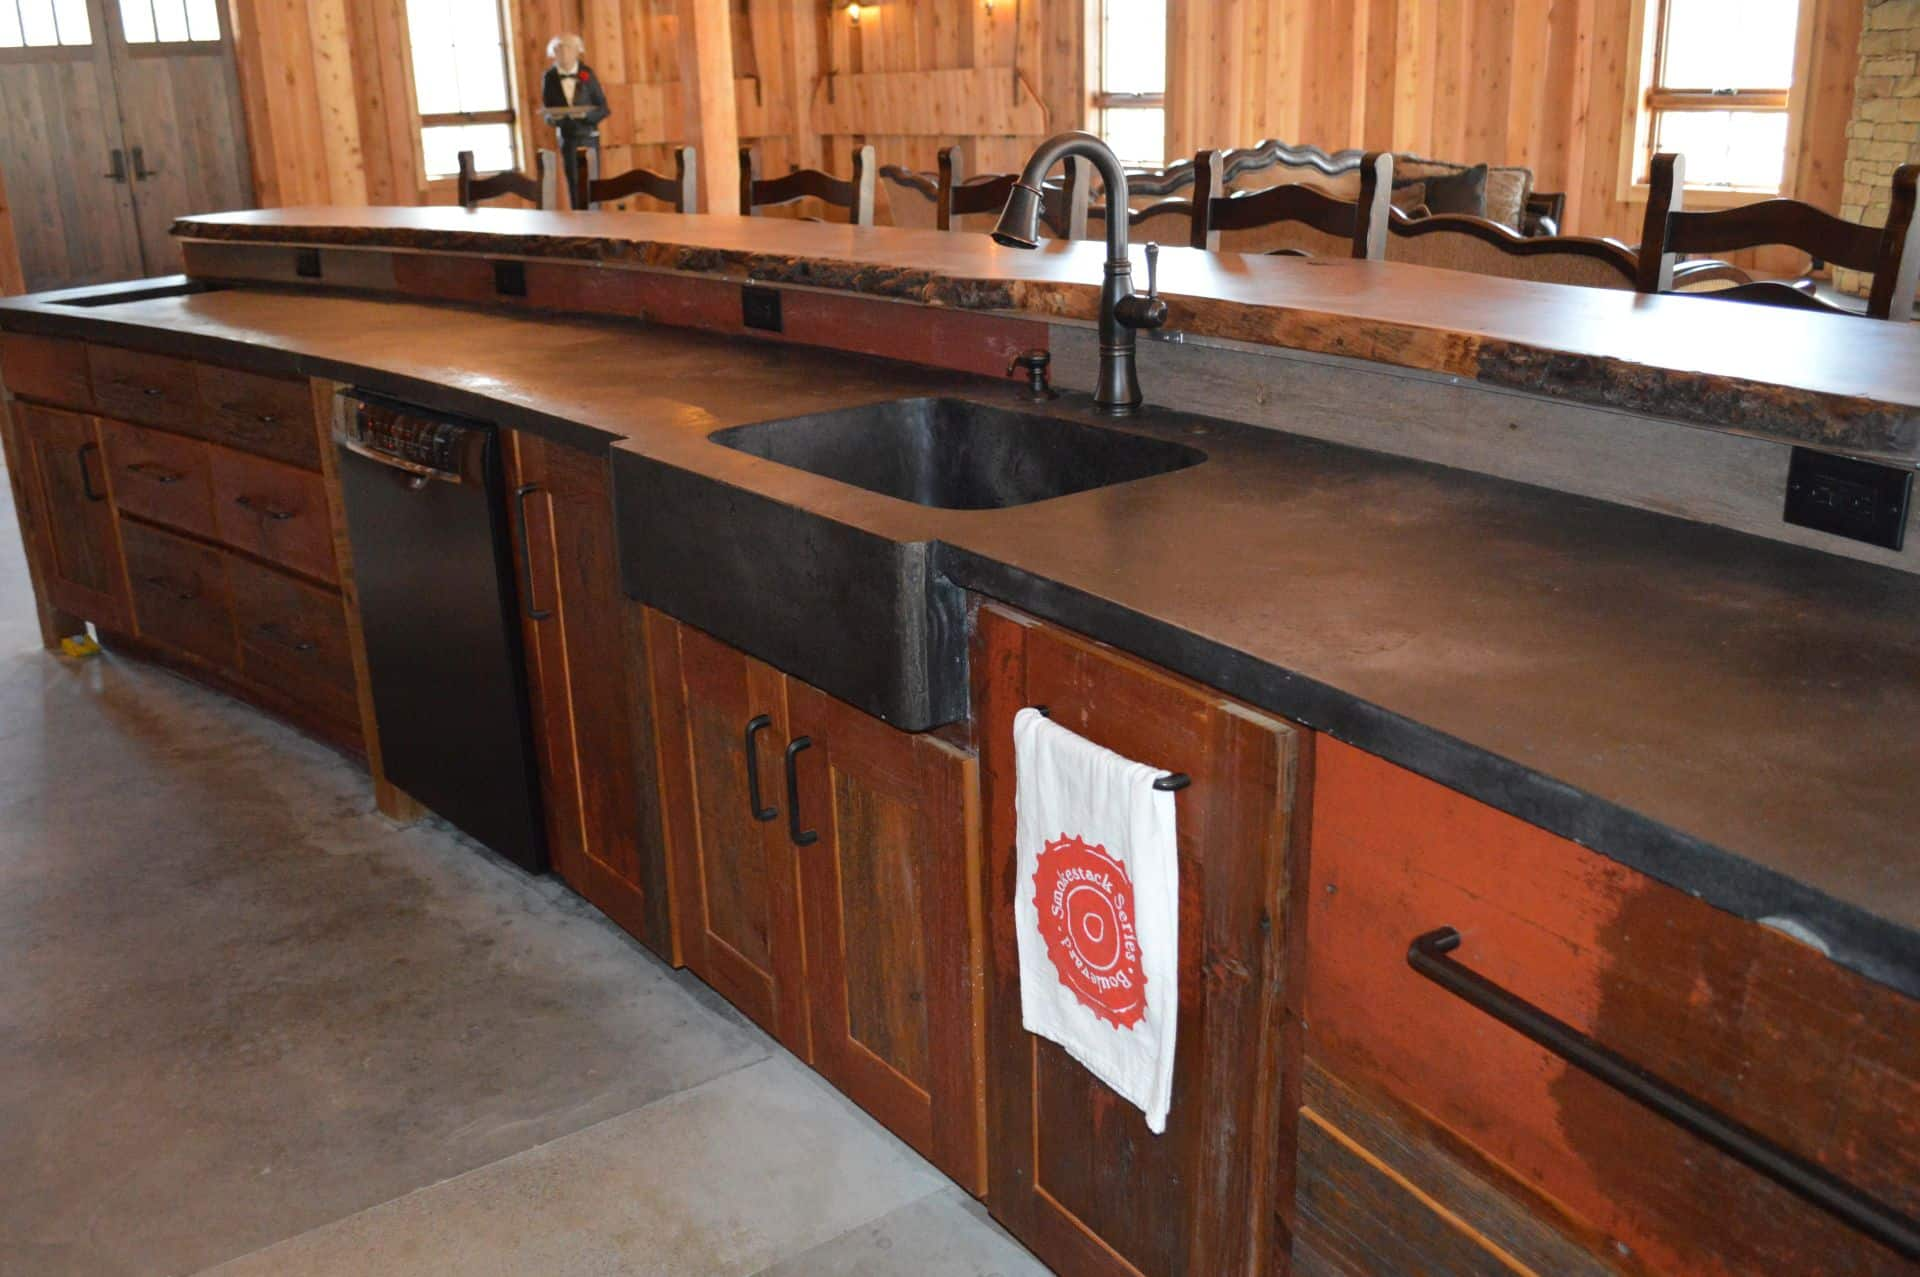 Lodge with a concrete bar, two levels, sink in the middle